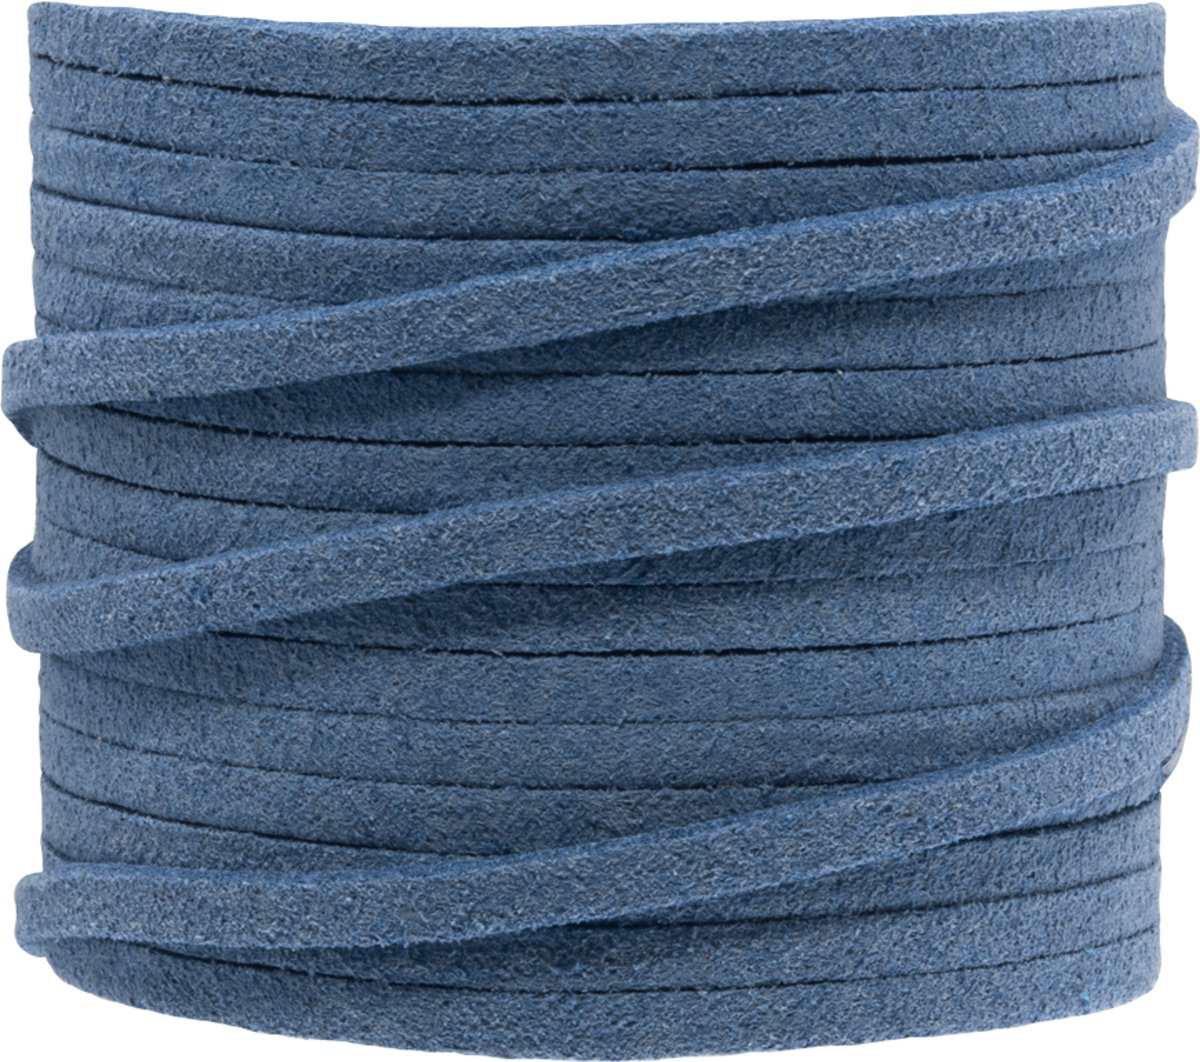 Faux Suede Veter (3 mm) Blue Epic (5 Meter)